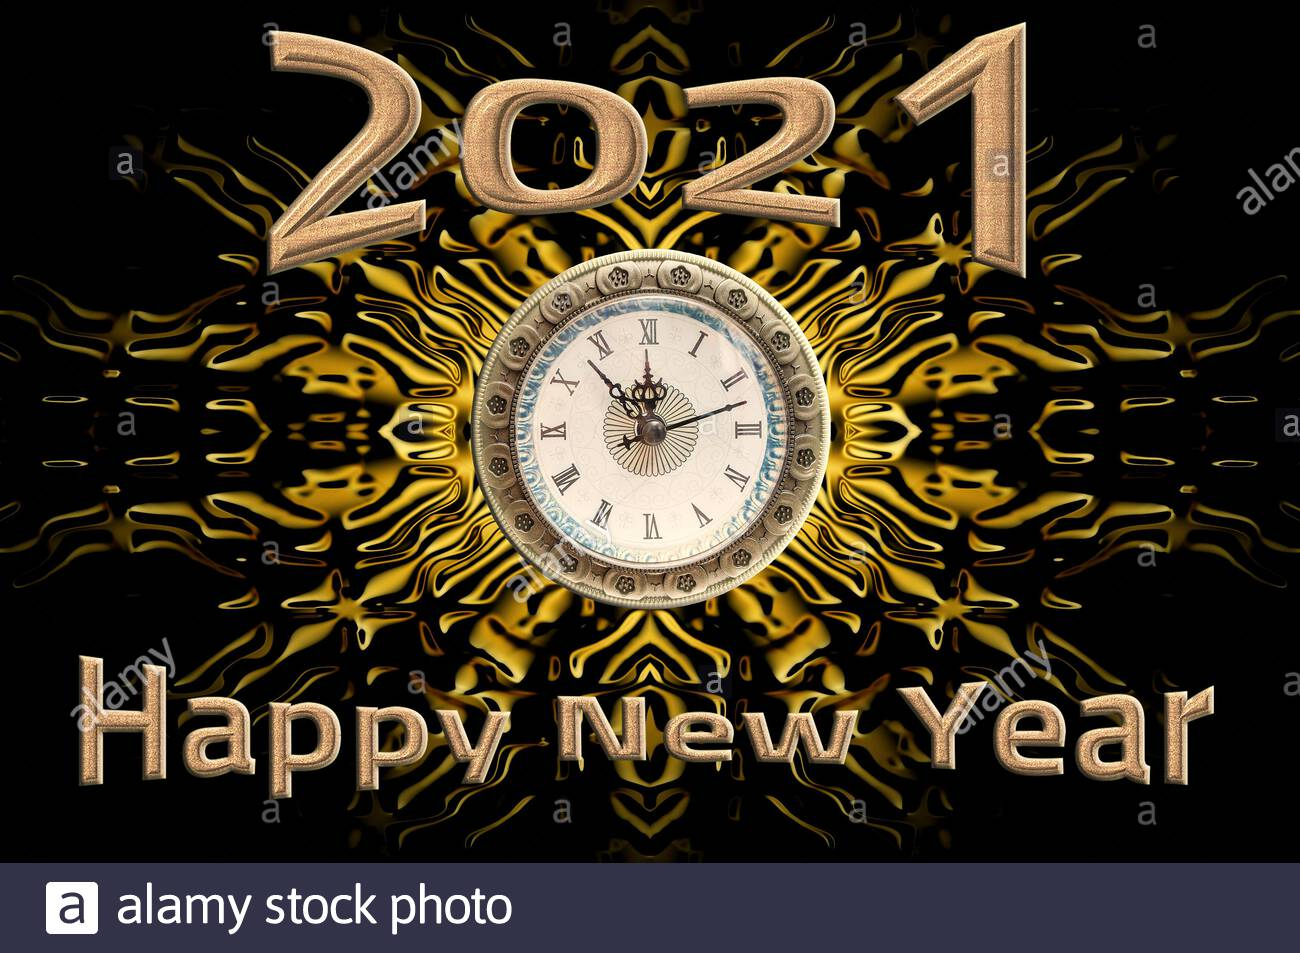 happy new year 2021 high resolution stock photography and images alamy https www alamy com happy new year 2021 wallpaper full of colors background with nice geometric patternshappy new year 2021 elegant card background with decorative image377241887 html